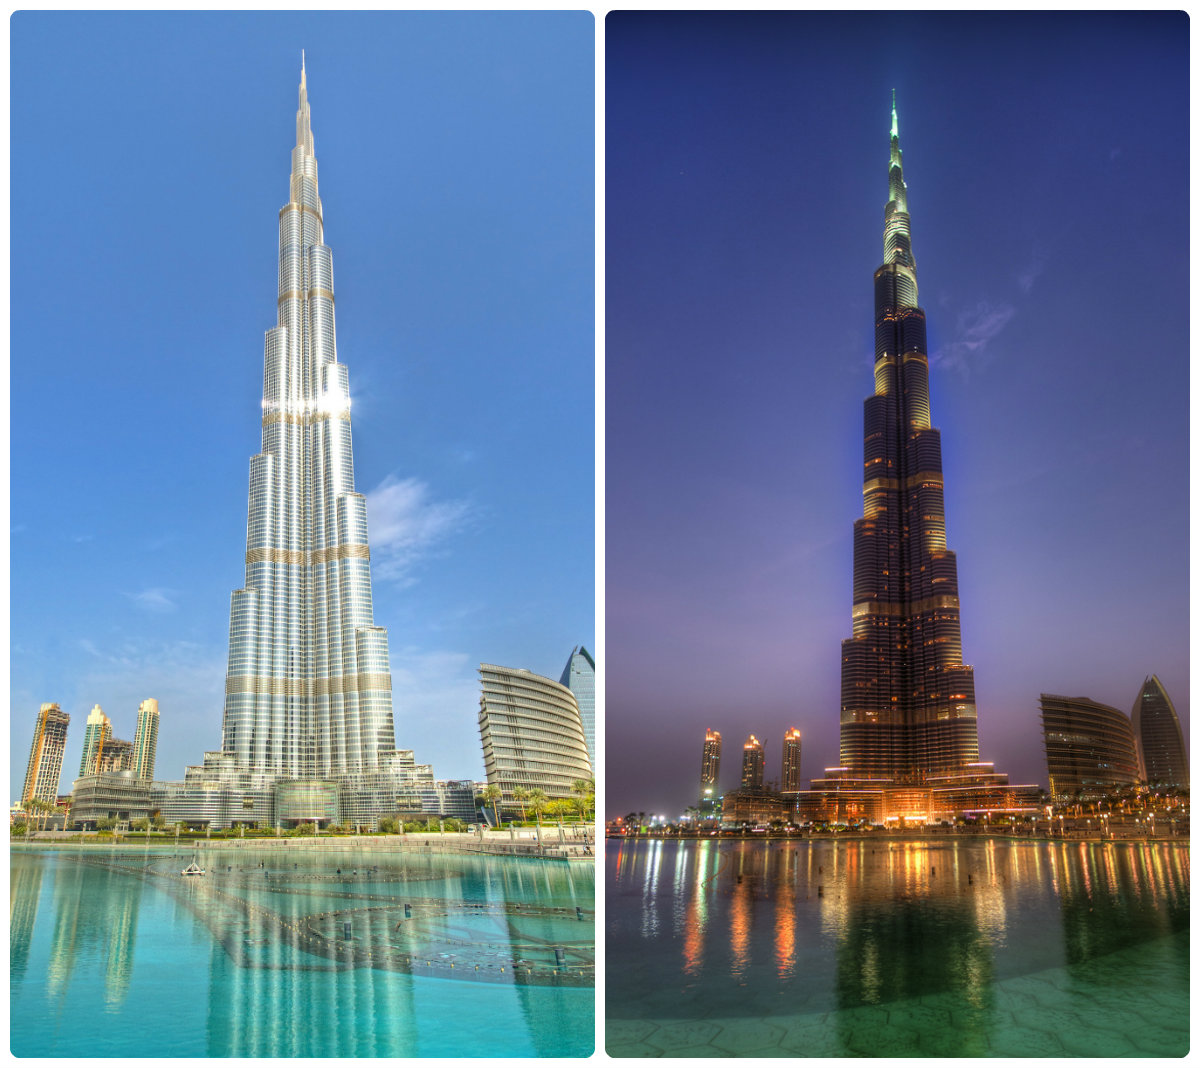 dubai-burj-khalifa-night-and-day